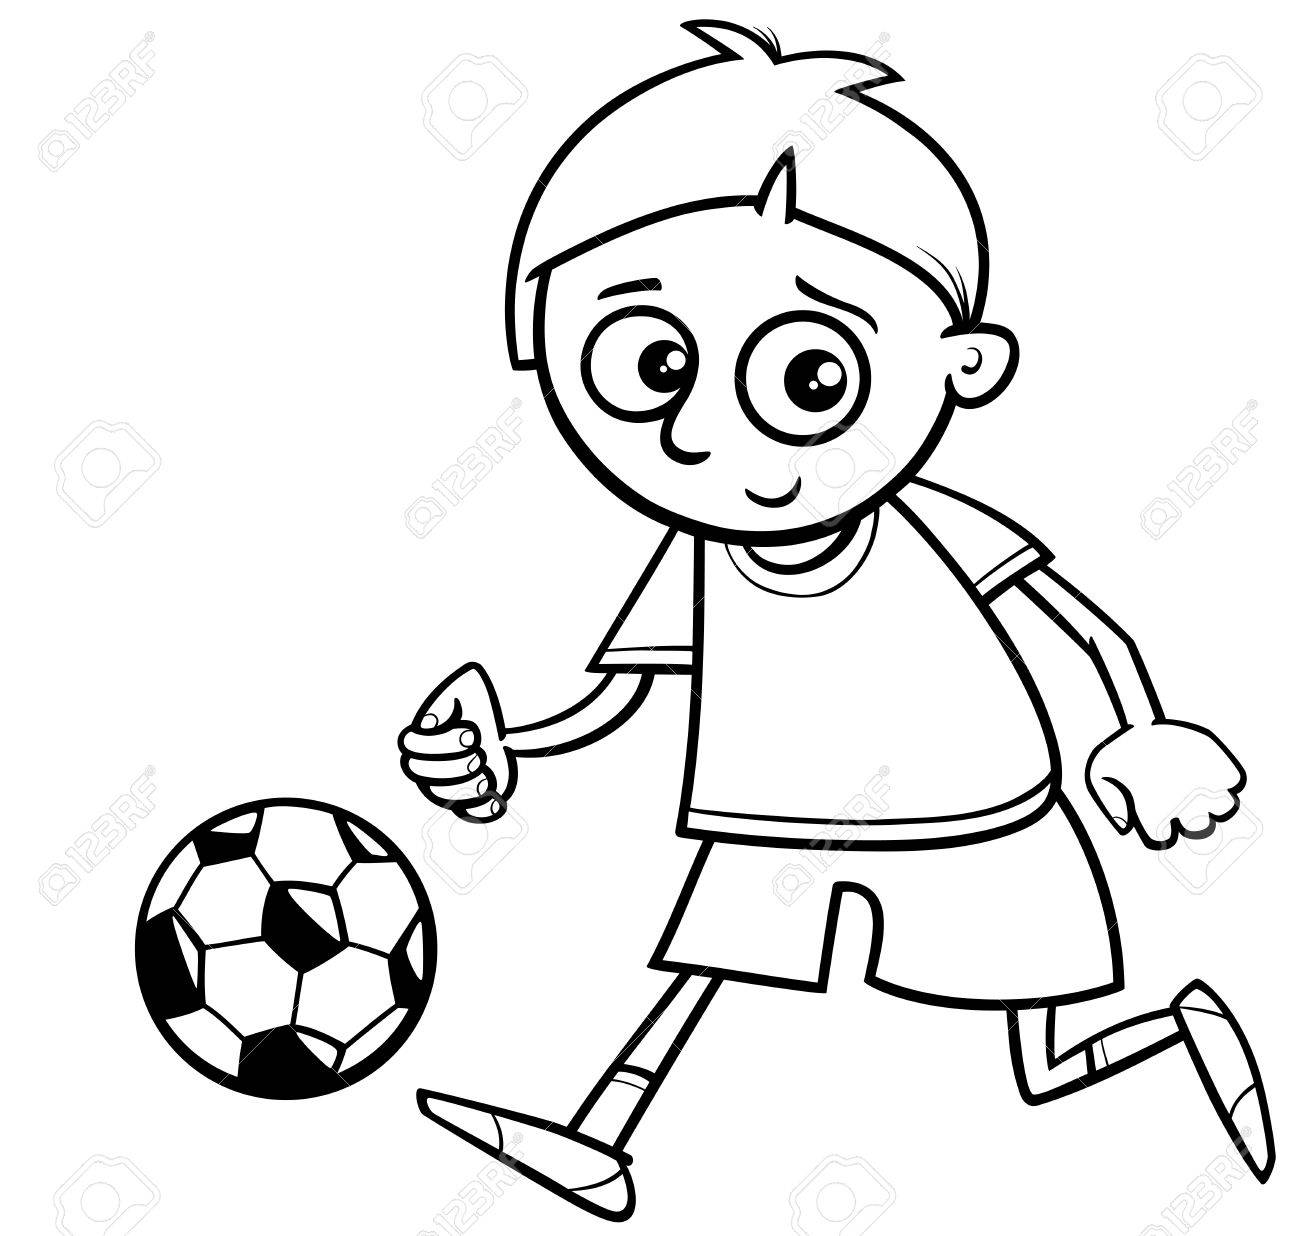 Black and White Cartoon Illustration of Boy Playing Football..